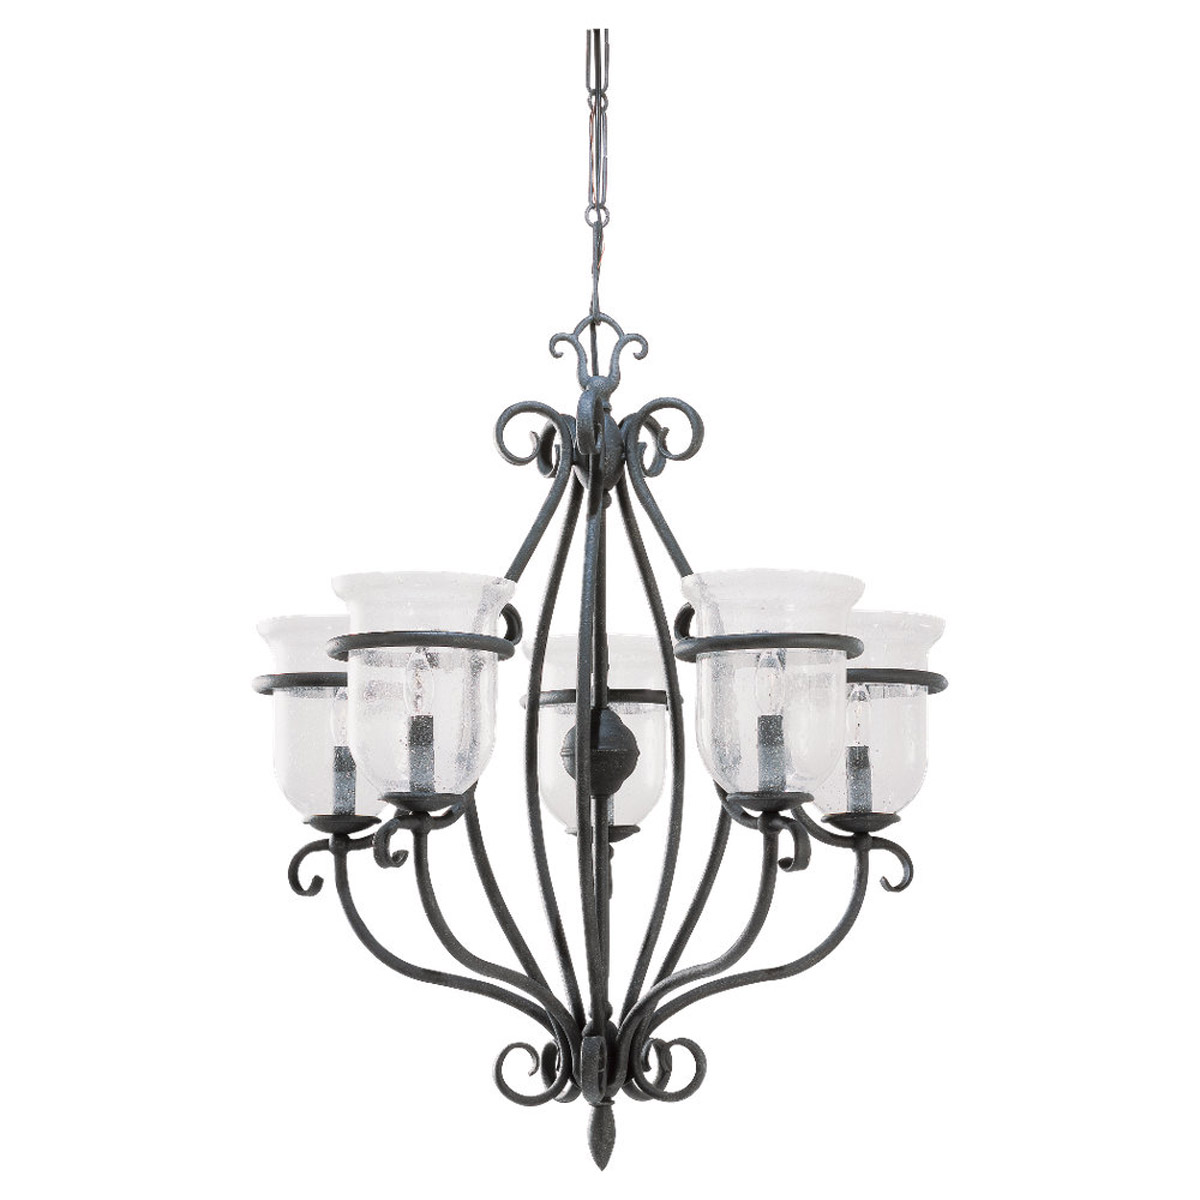 Sea Gull Lighting Manor House 5 Light Chandelier in Weathered Iron 3401-07